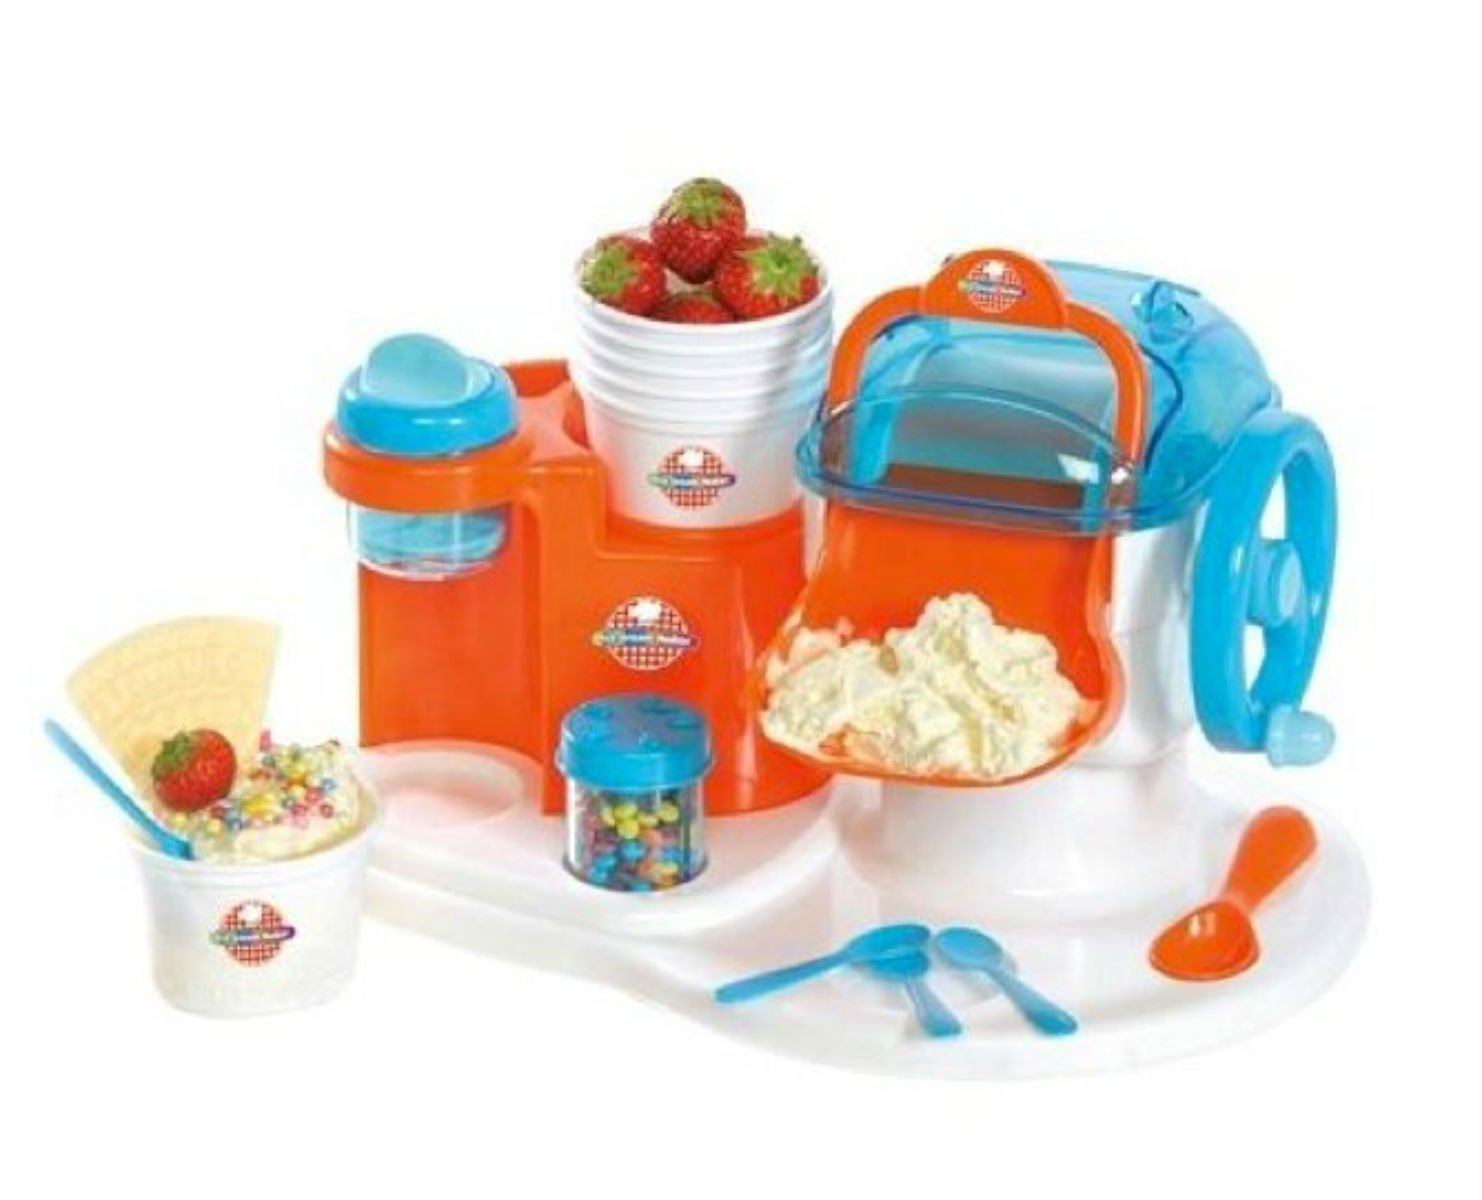 Toy Ice Cream Maker